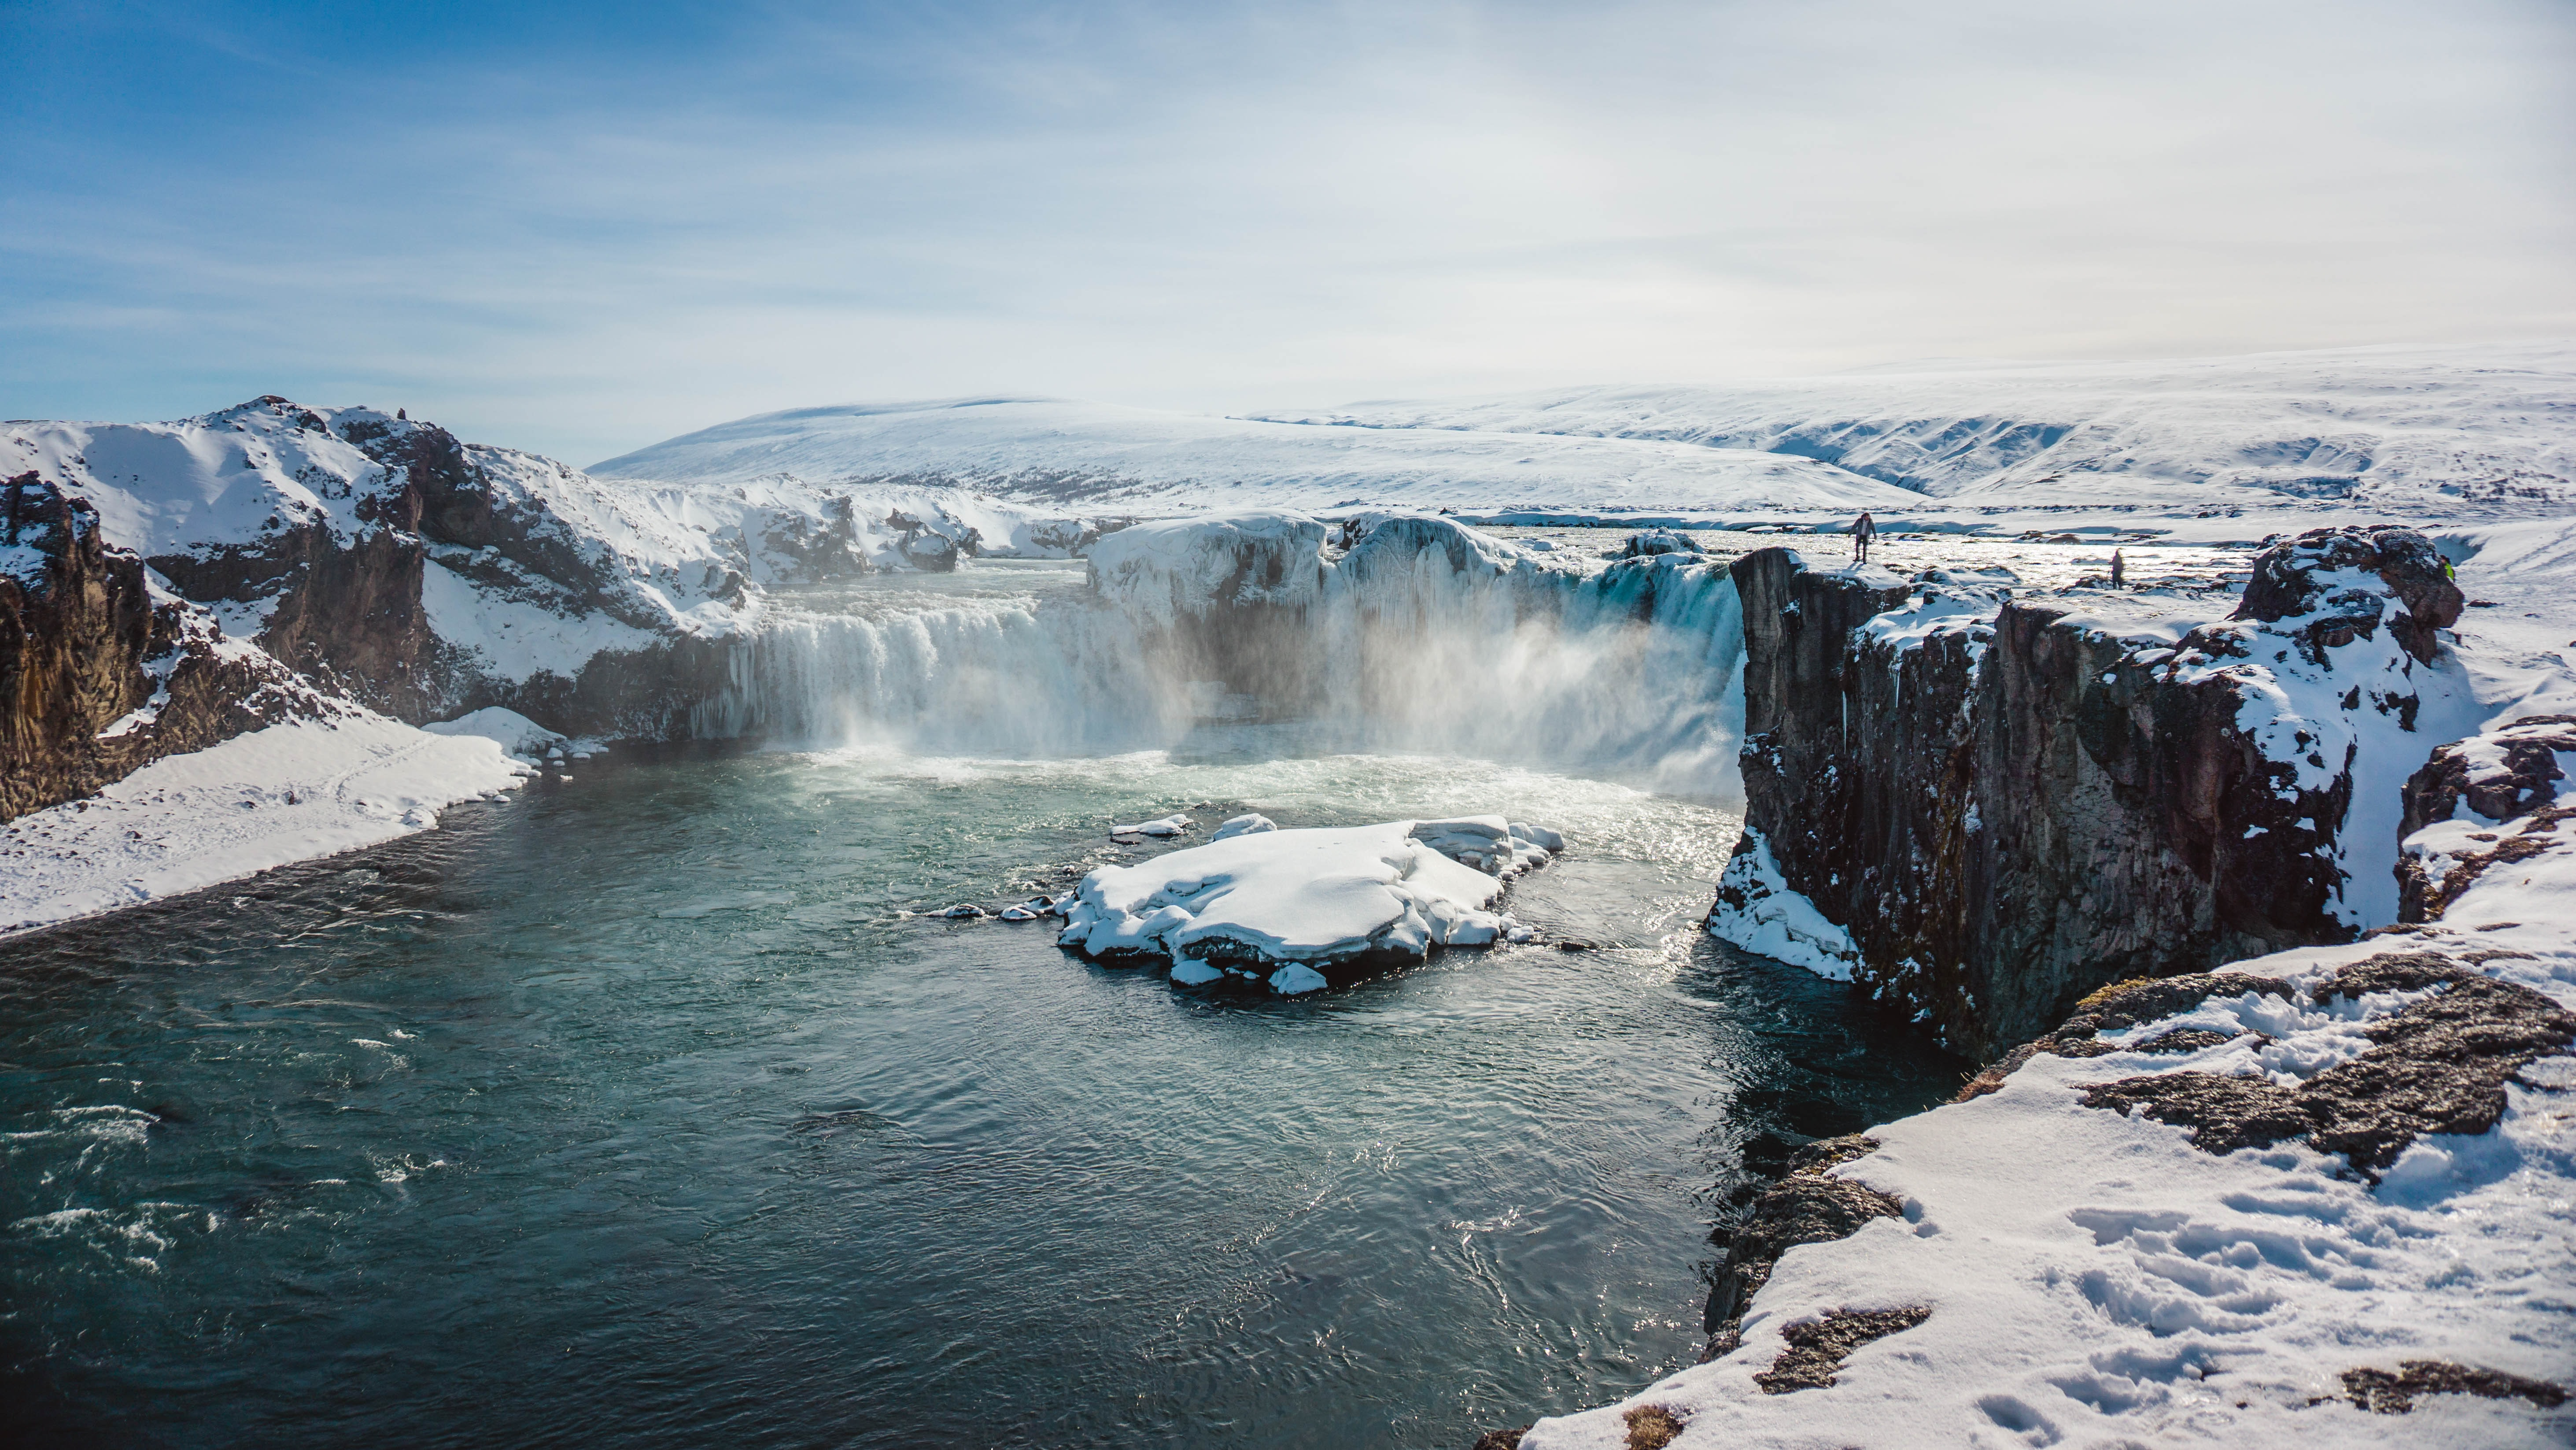 waterfall covered with snow at daytime